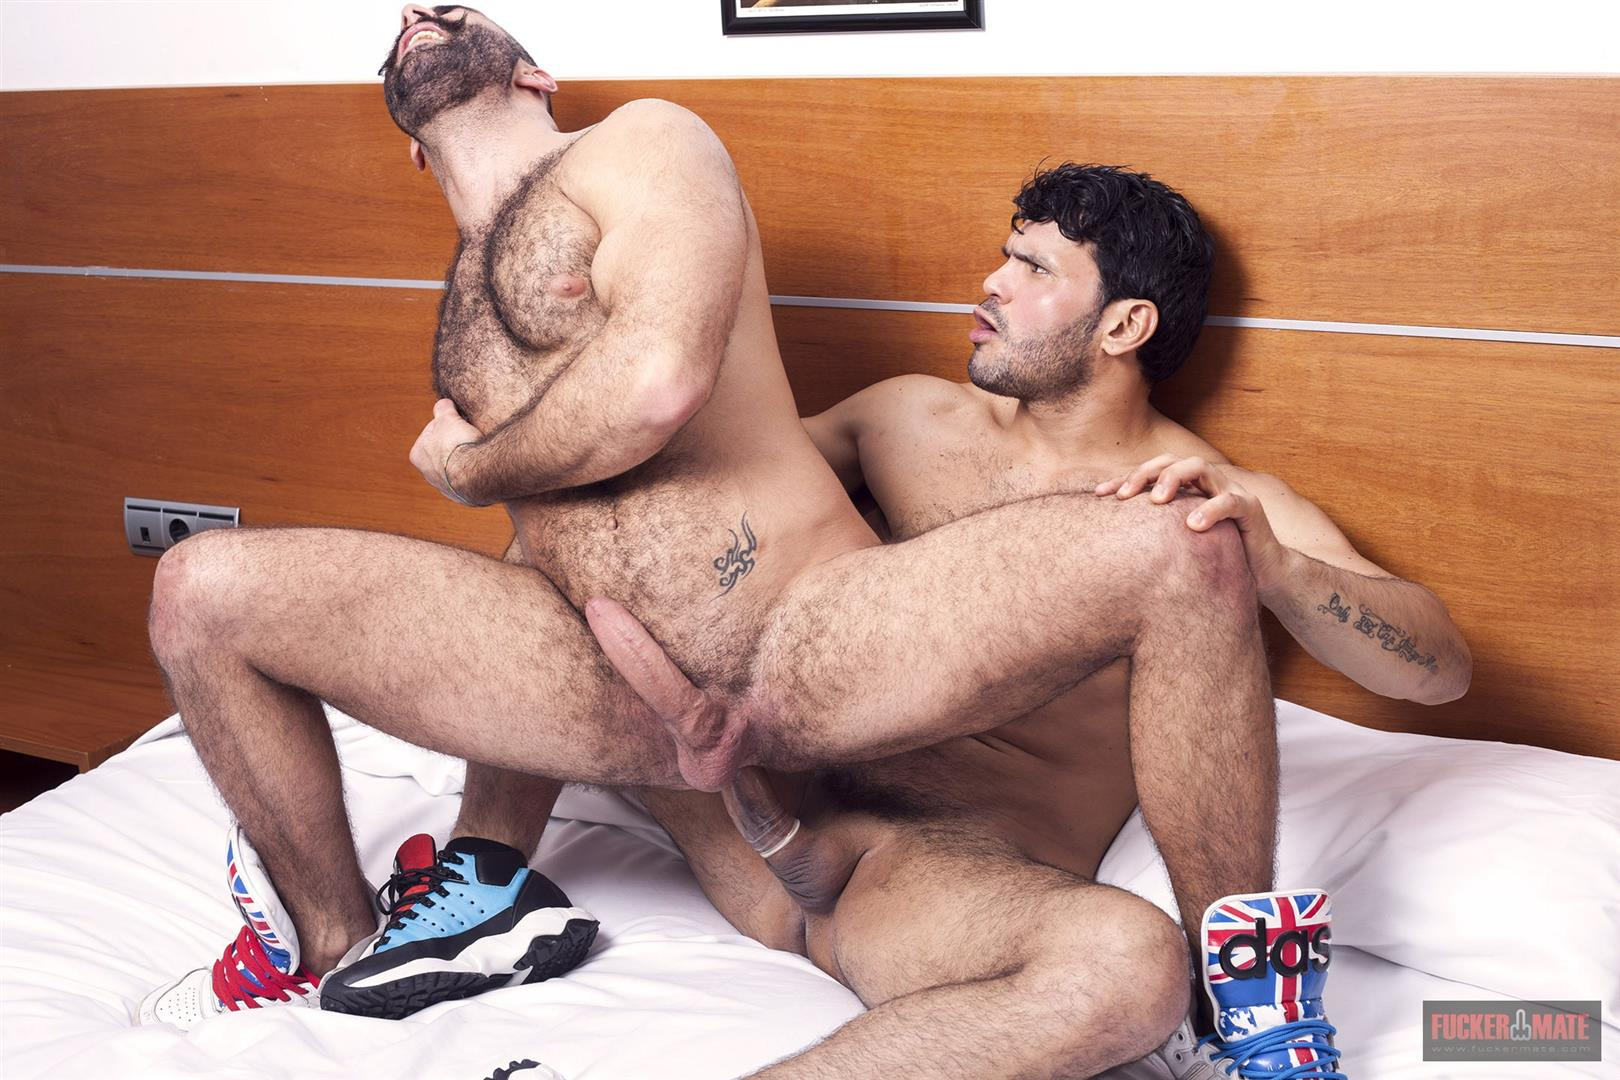 Muscle Men Gay Porn gay hairy muscle men having sex other - xxxpicz